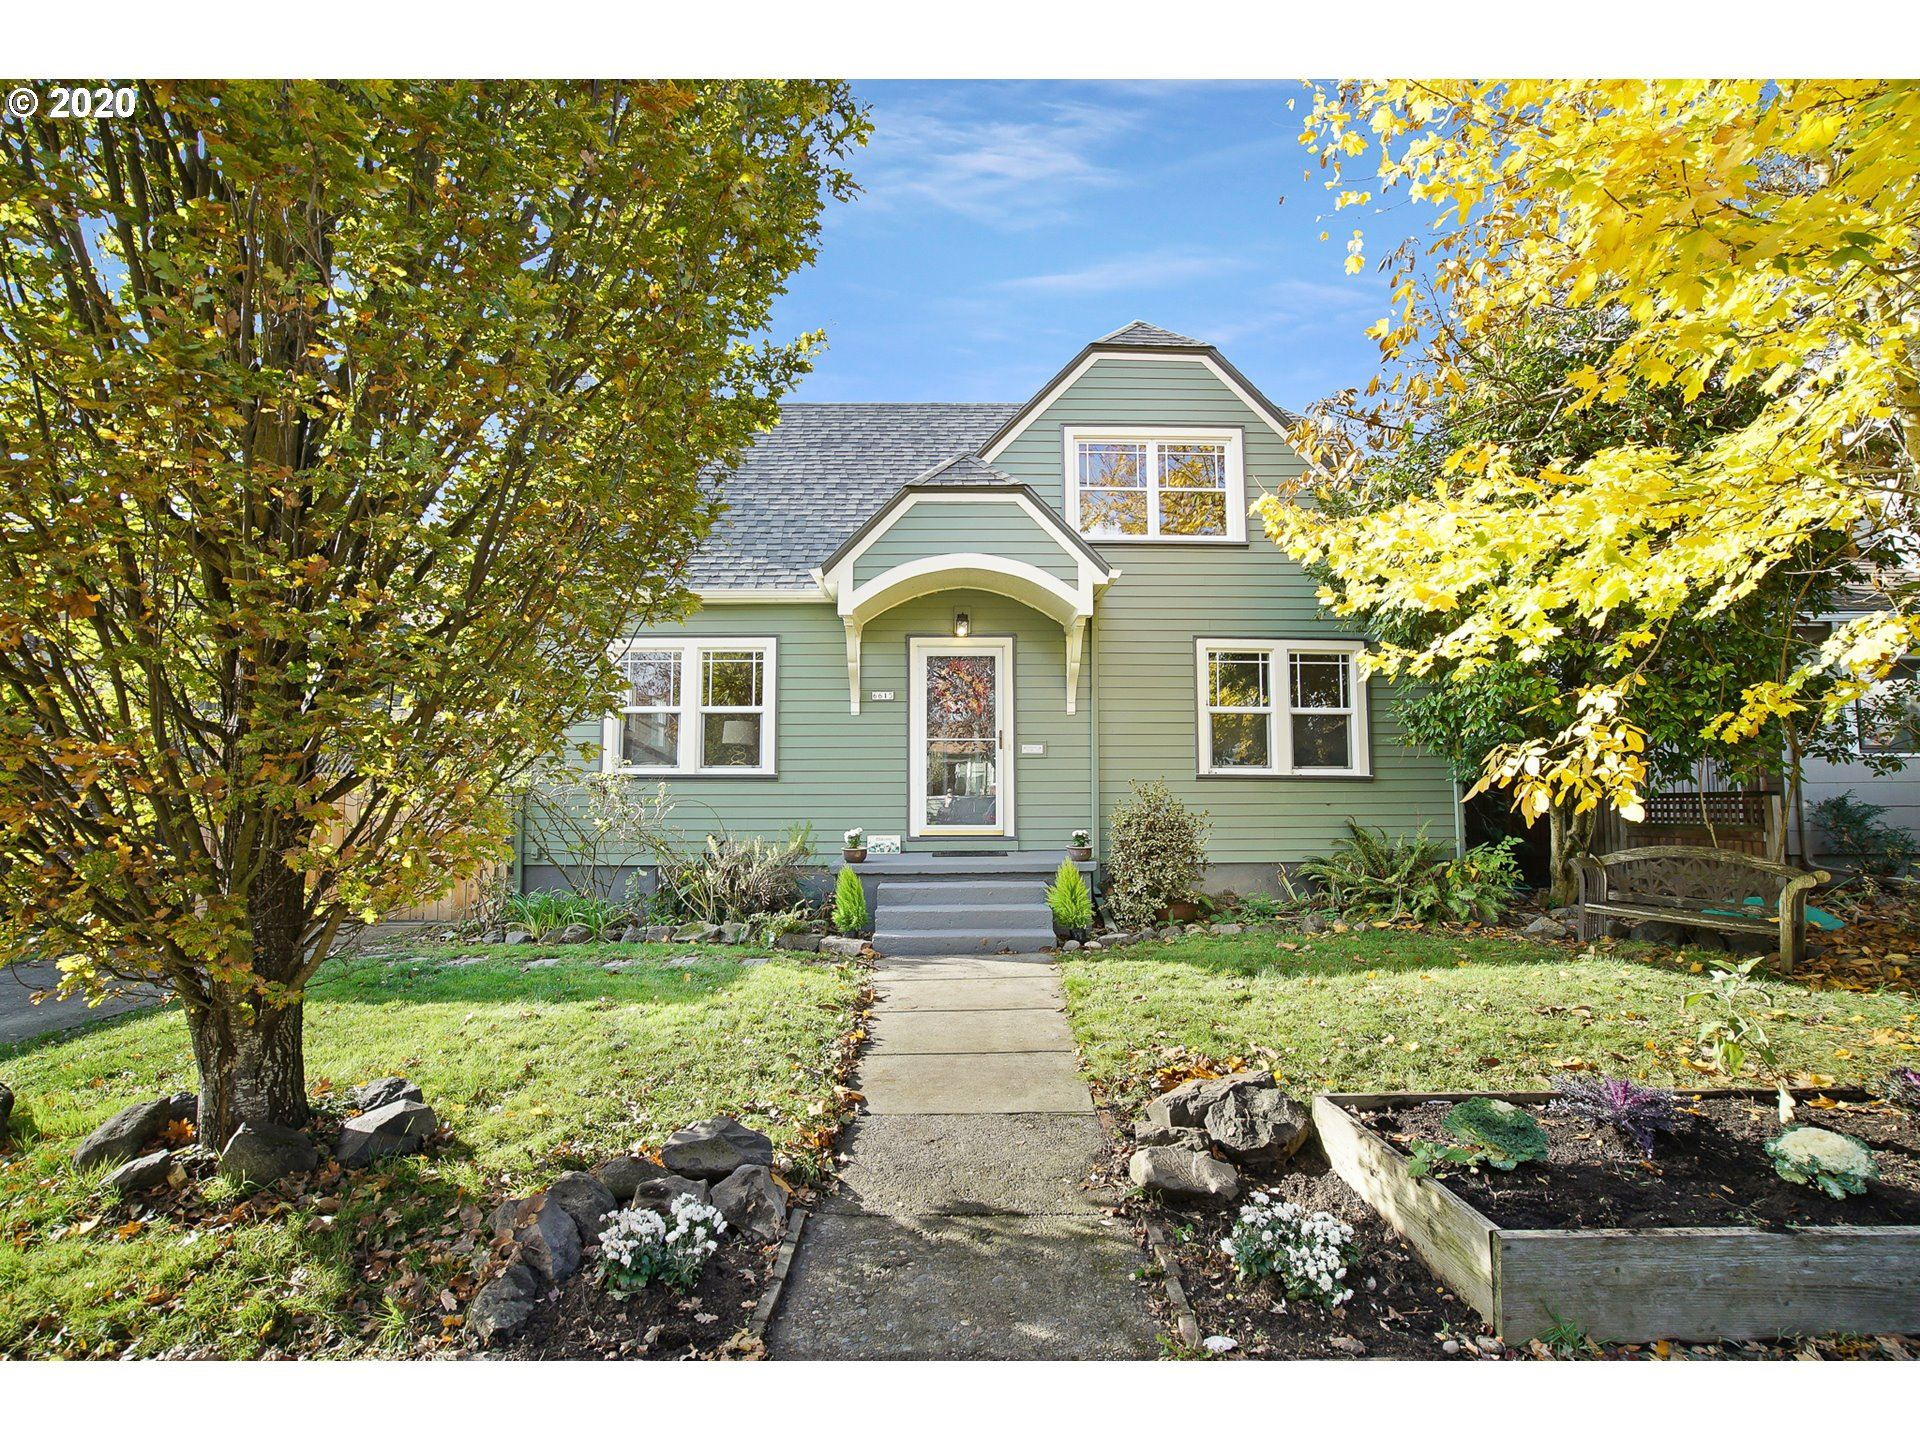 6615 SE 20TH AVE, Portland, OR 97202 - MLS#: 20555578